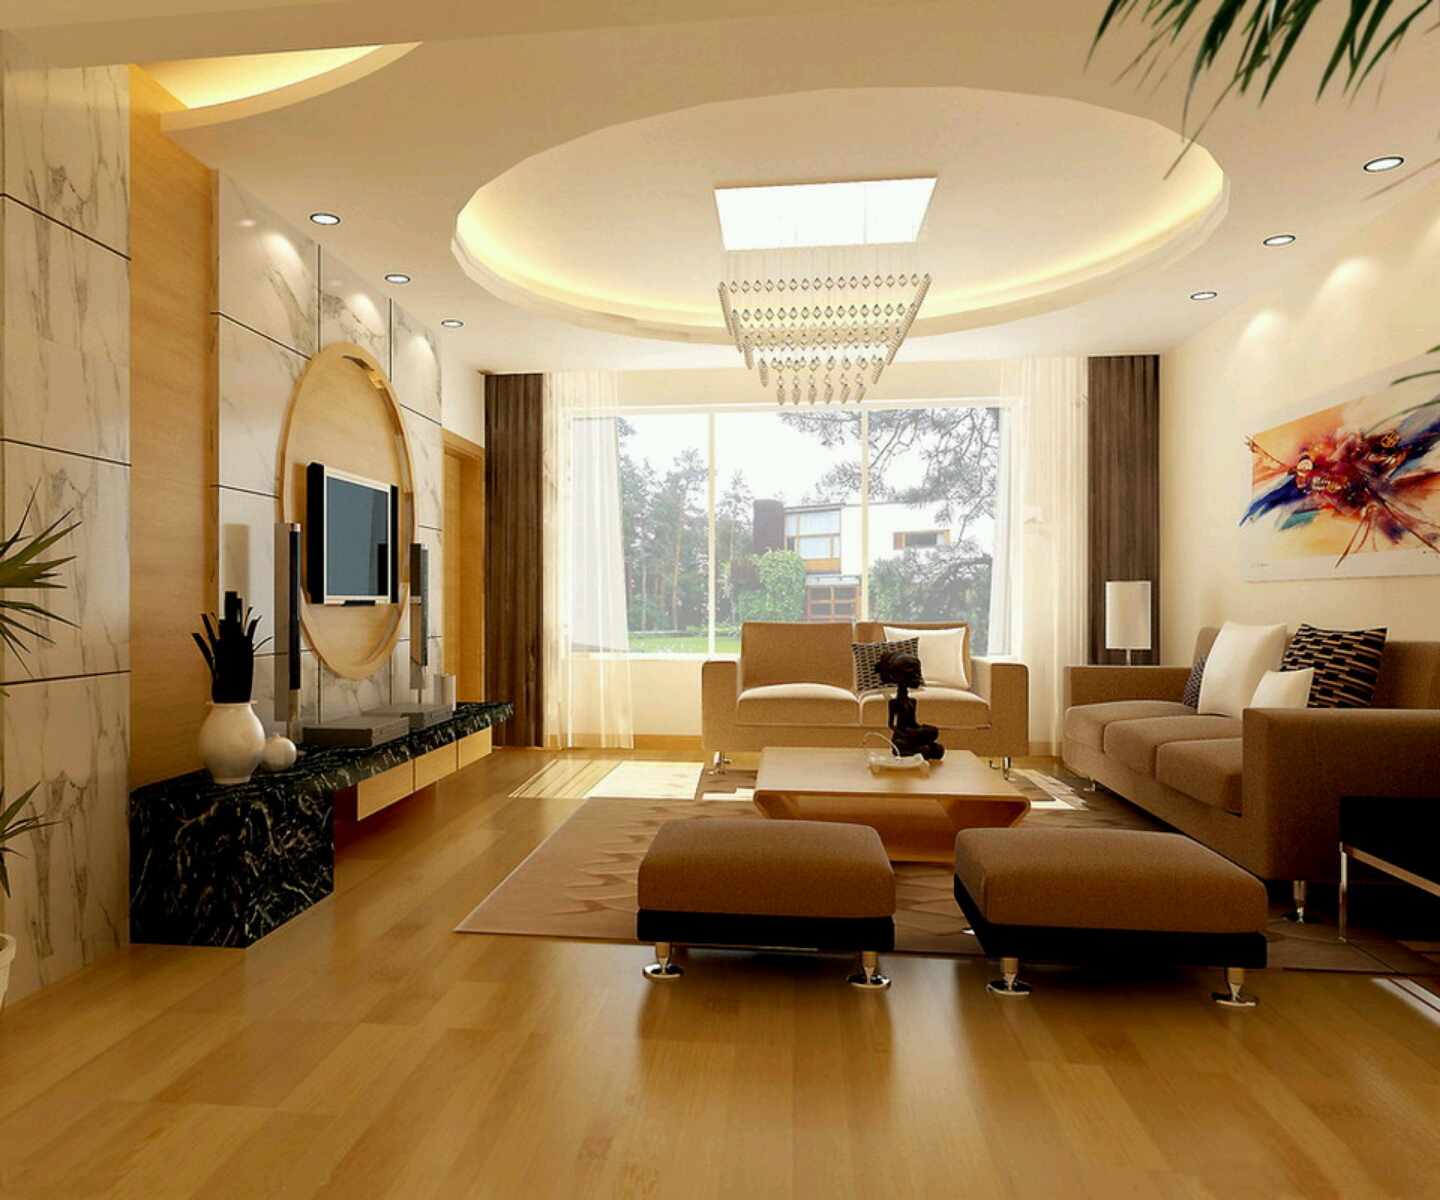 New home designs latest modern interior decoration for House living room design